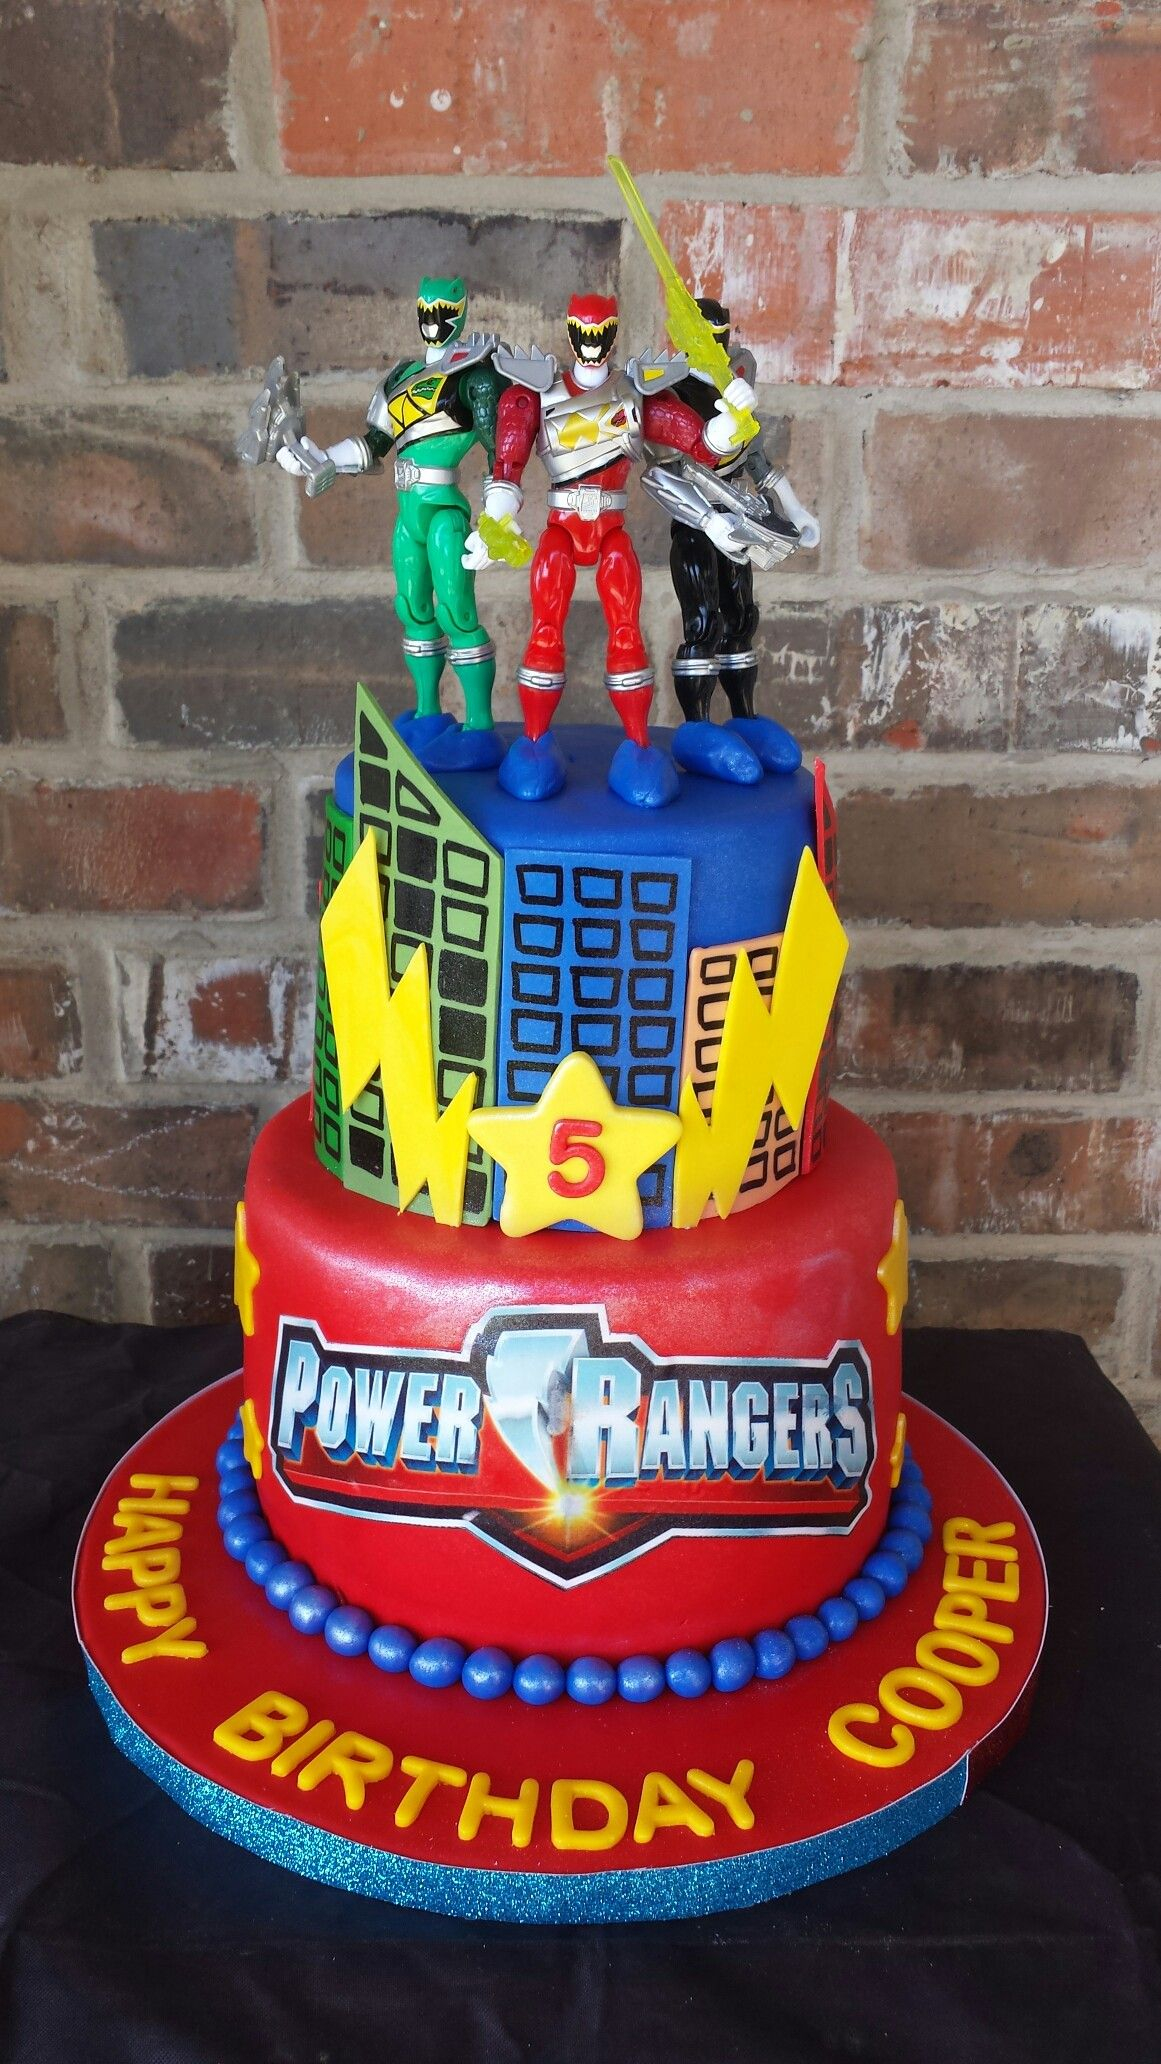 Power Rangers Birthday Cake Power Rangers Cake Max Amor Cakes Wedding Power Ranger